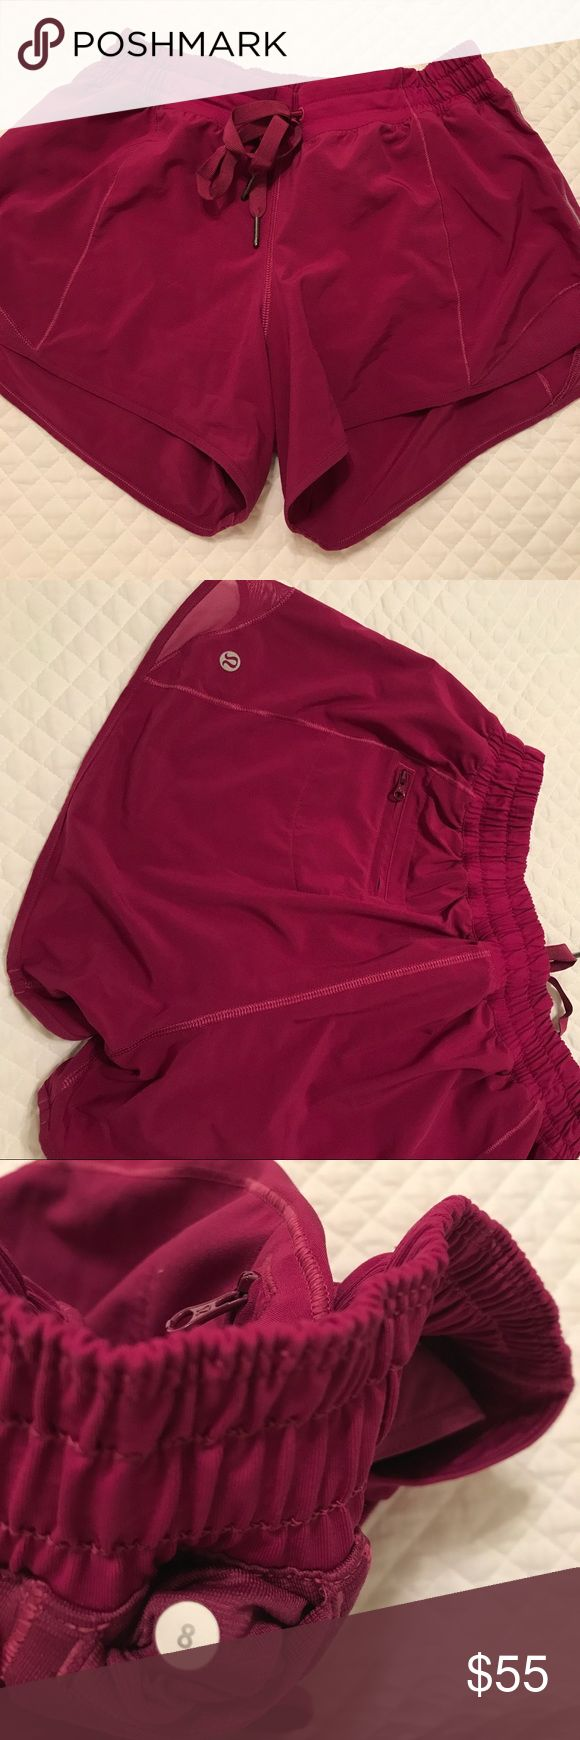 Lululemon Hotty Hot Long BRAND NEW. PERFECT CONDITION. BOUGHT LAST WEEK AT LULULEMON STORE. Beautiful purple color! lululemon athletica Shorts